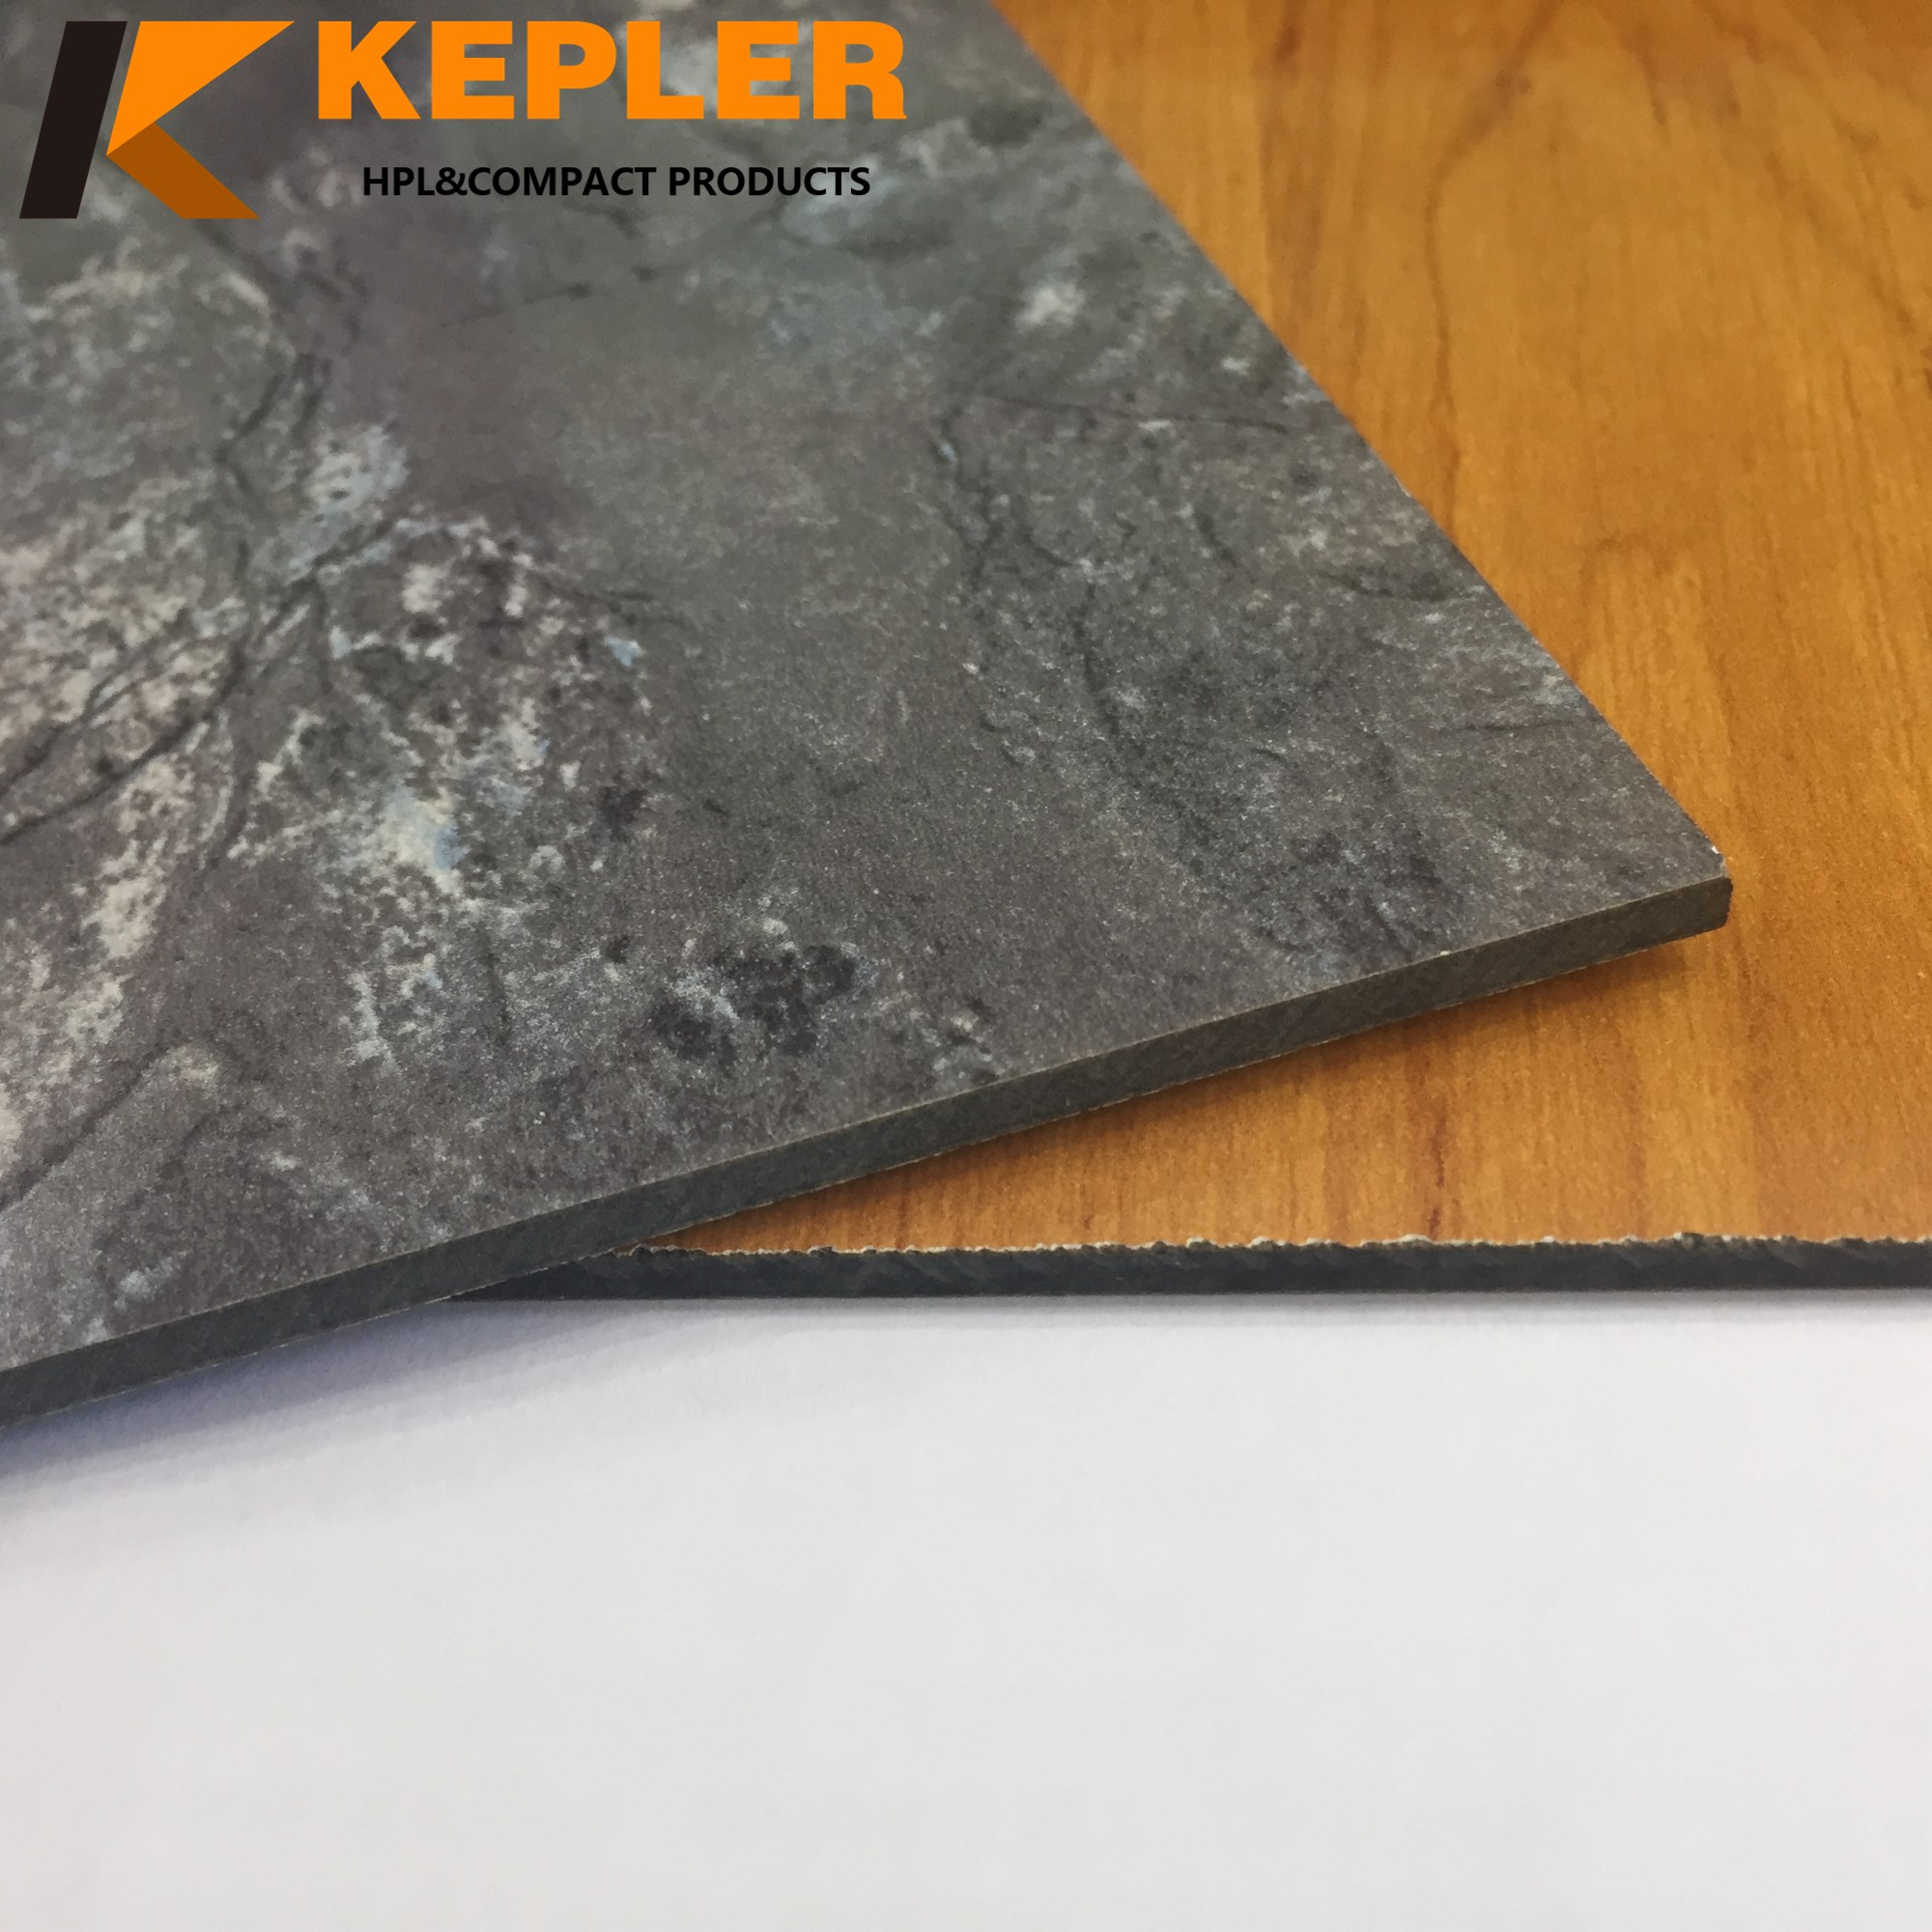 Kepler decorative waterproof fireproof heat resistant double finish 2 faces color hpl compact phenolic laminate board